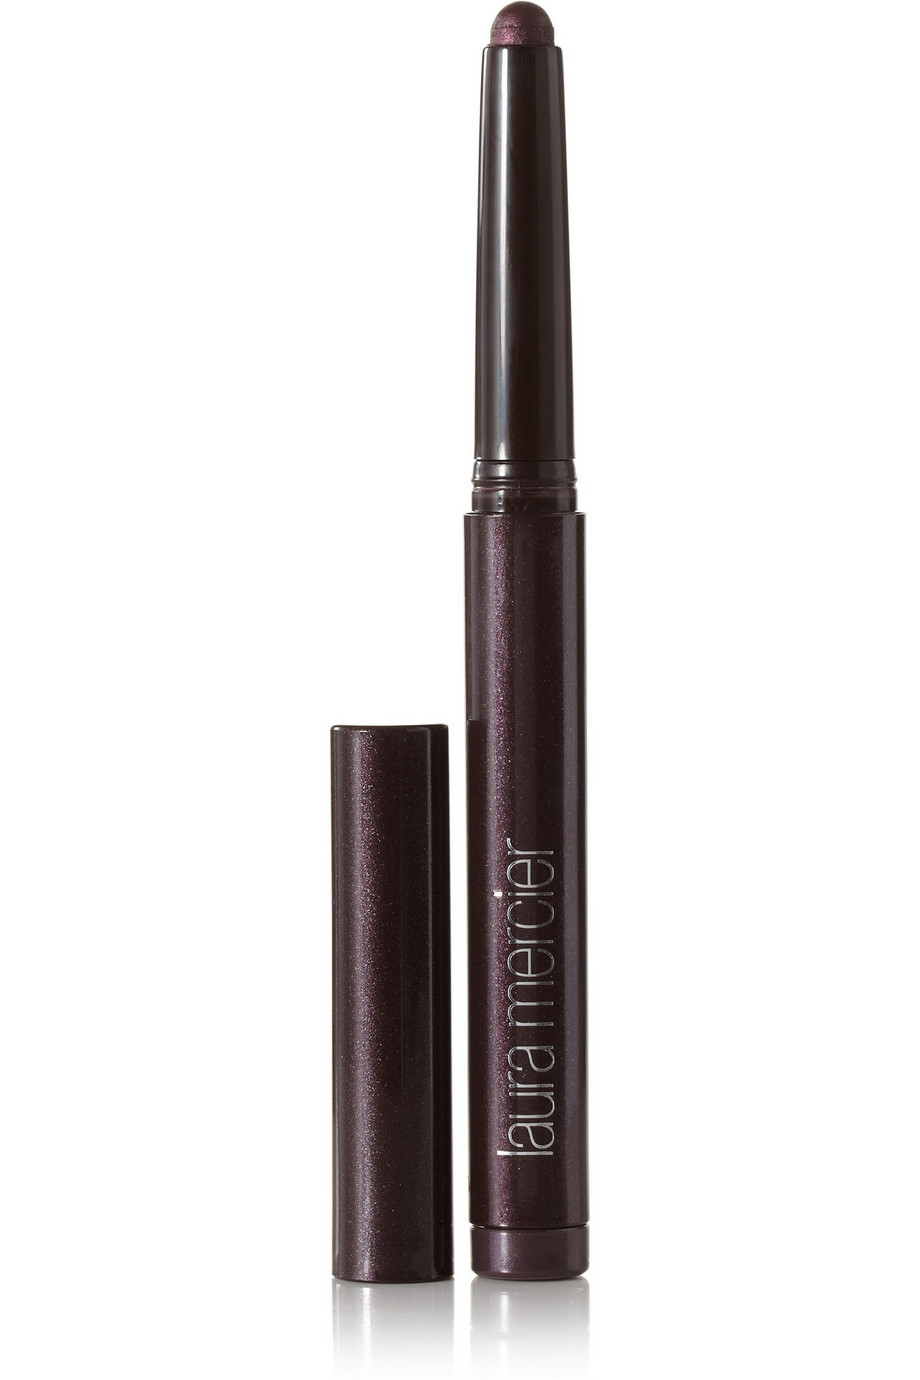 Laura Mercier Caviar Stick Eye Colour - Plum